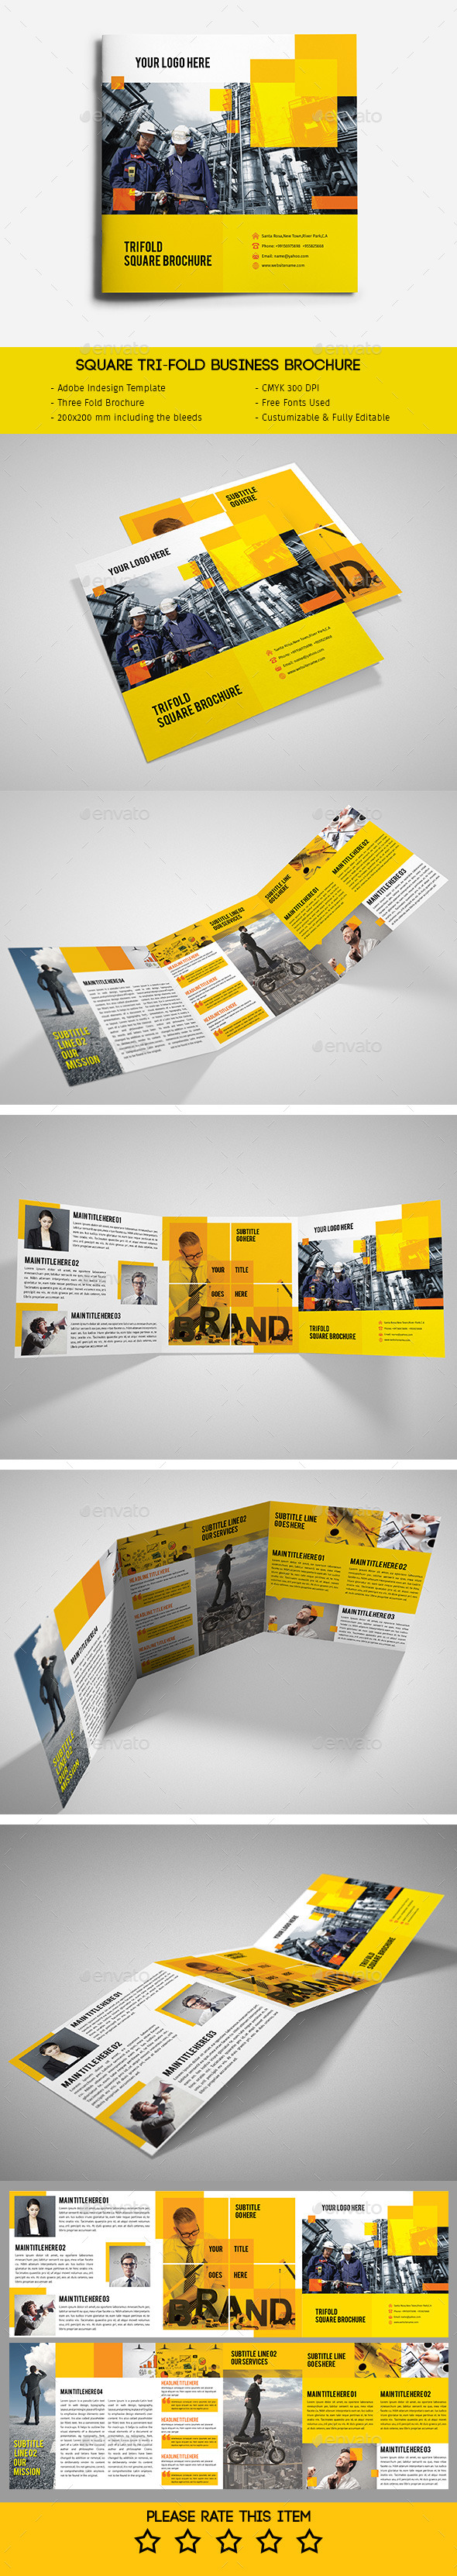 GraphicRiver Square Tri-Fold Business Brochure 11915043